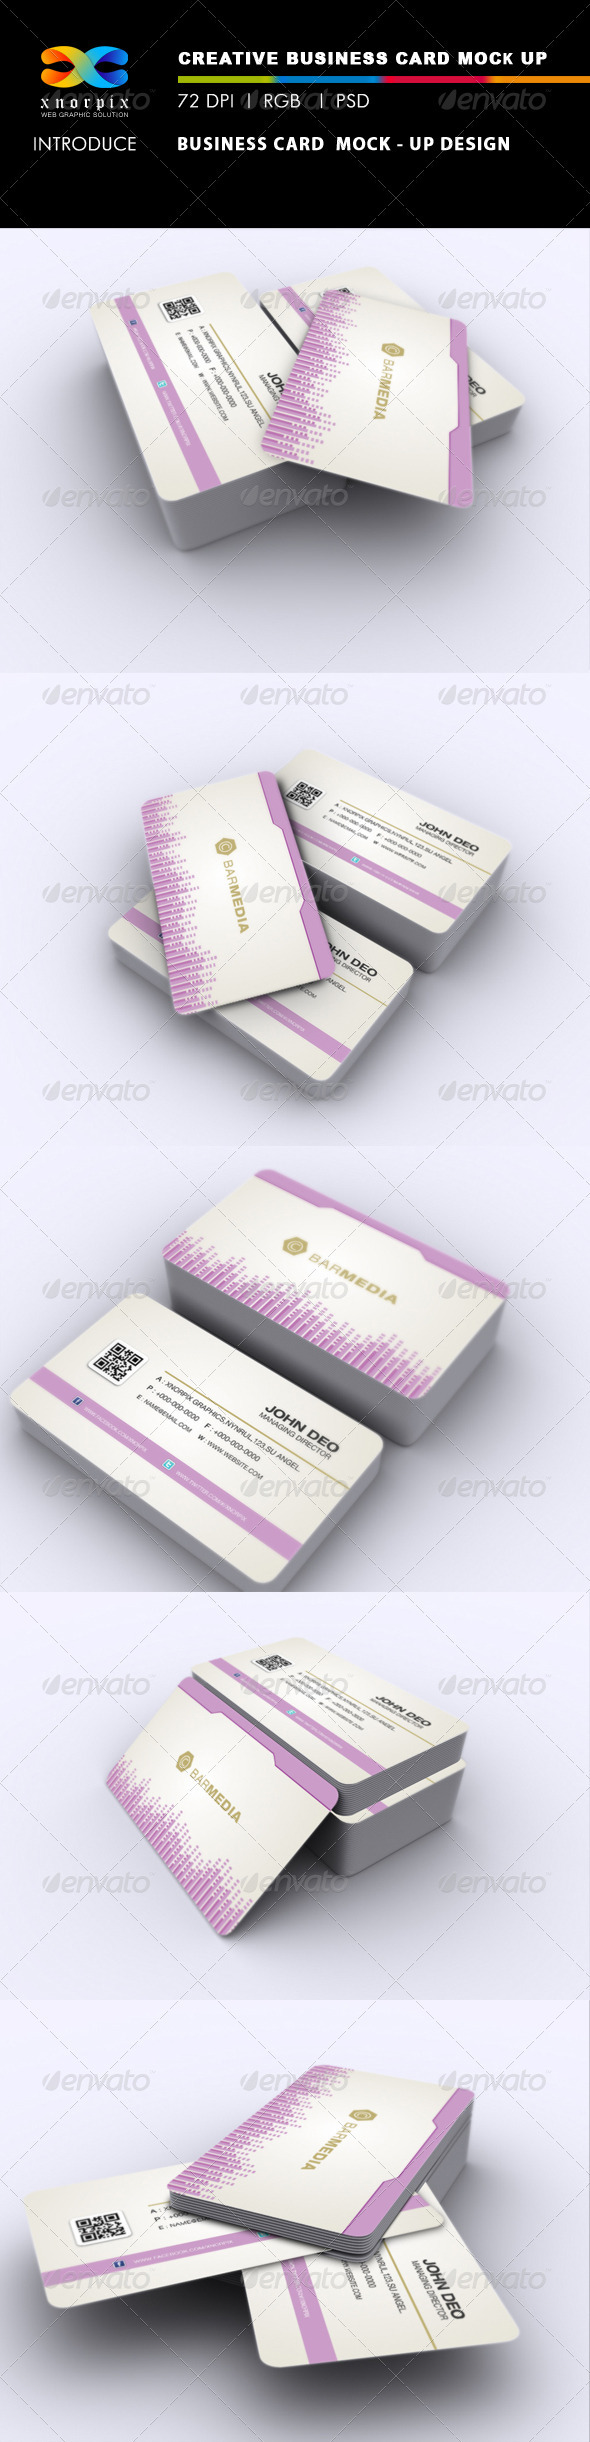 GraphicRiver Realistic Round Corner Business Card Mock-up 2662898